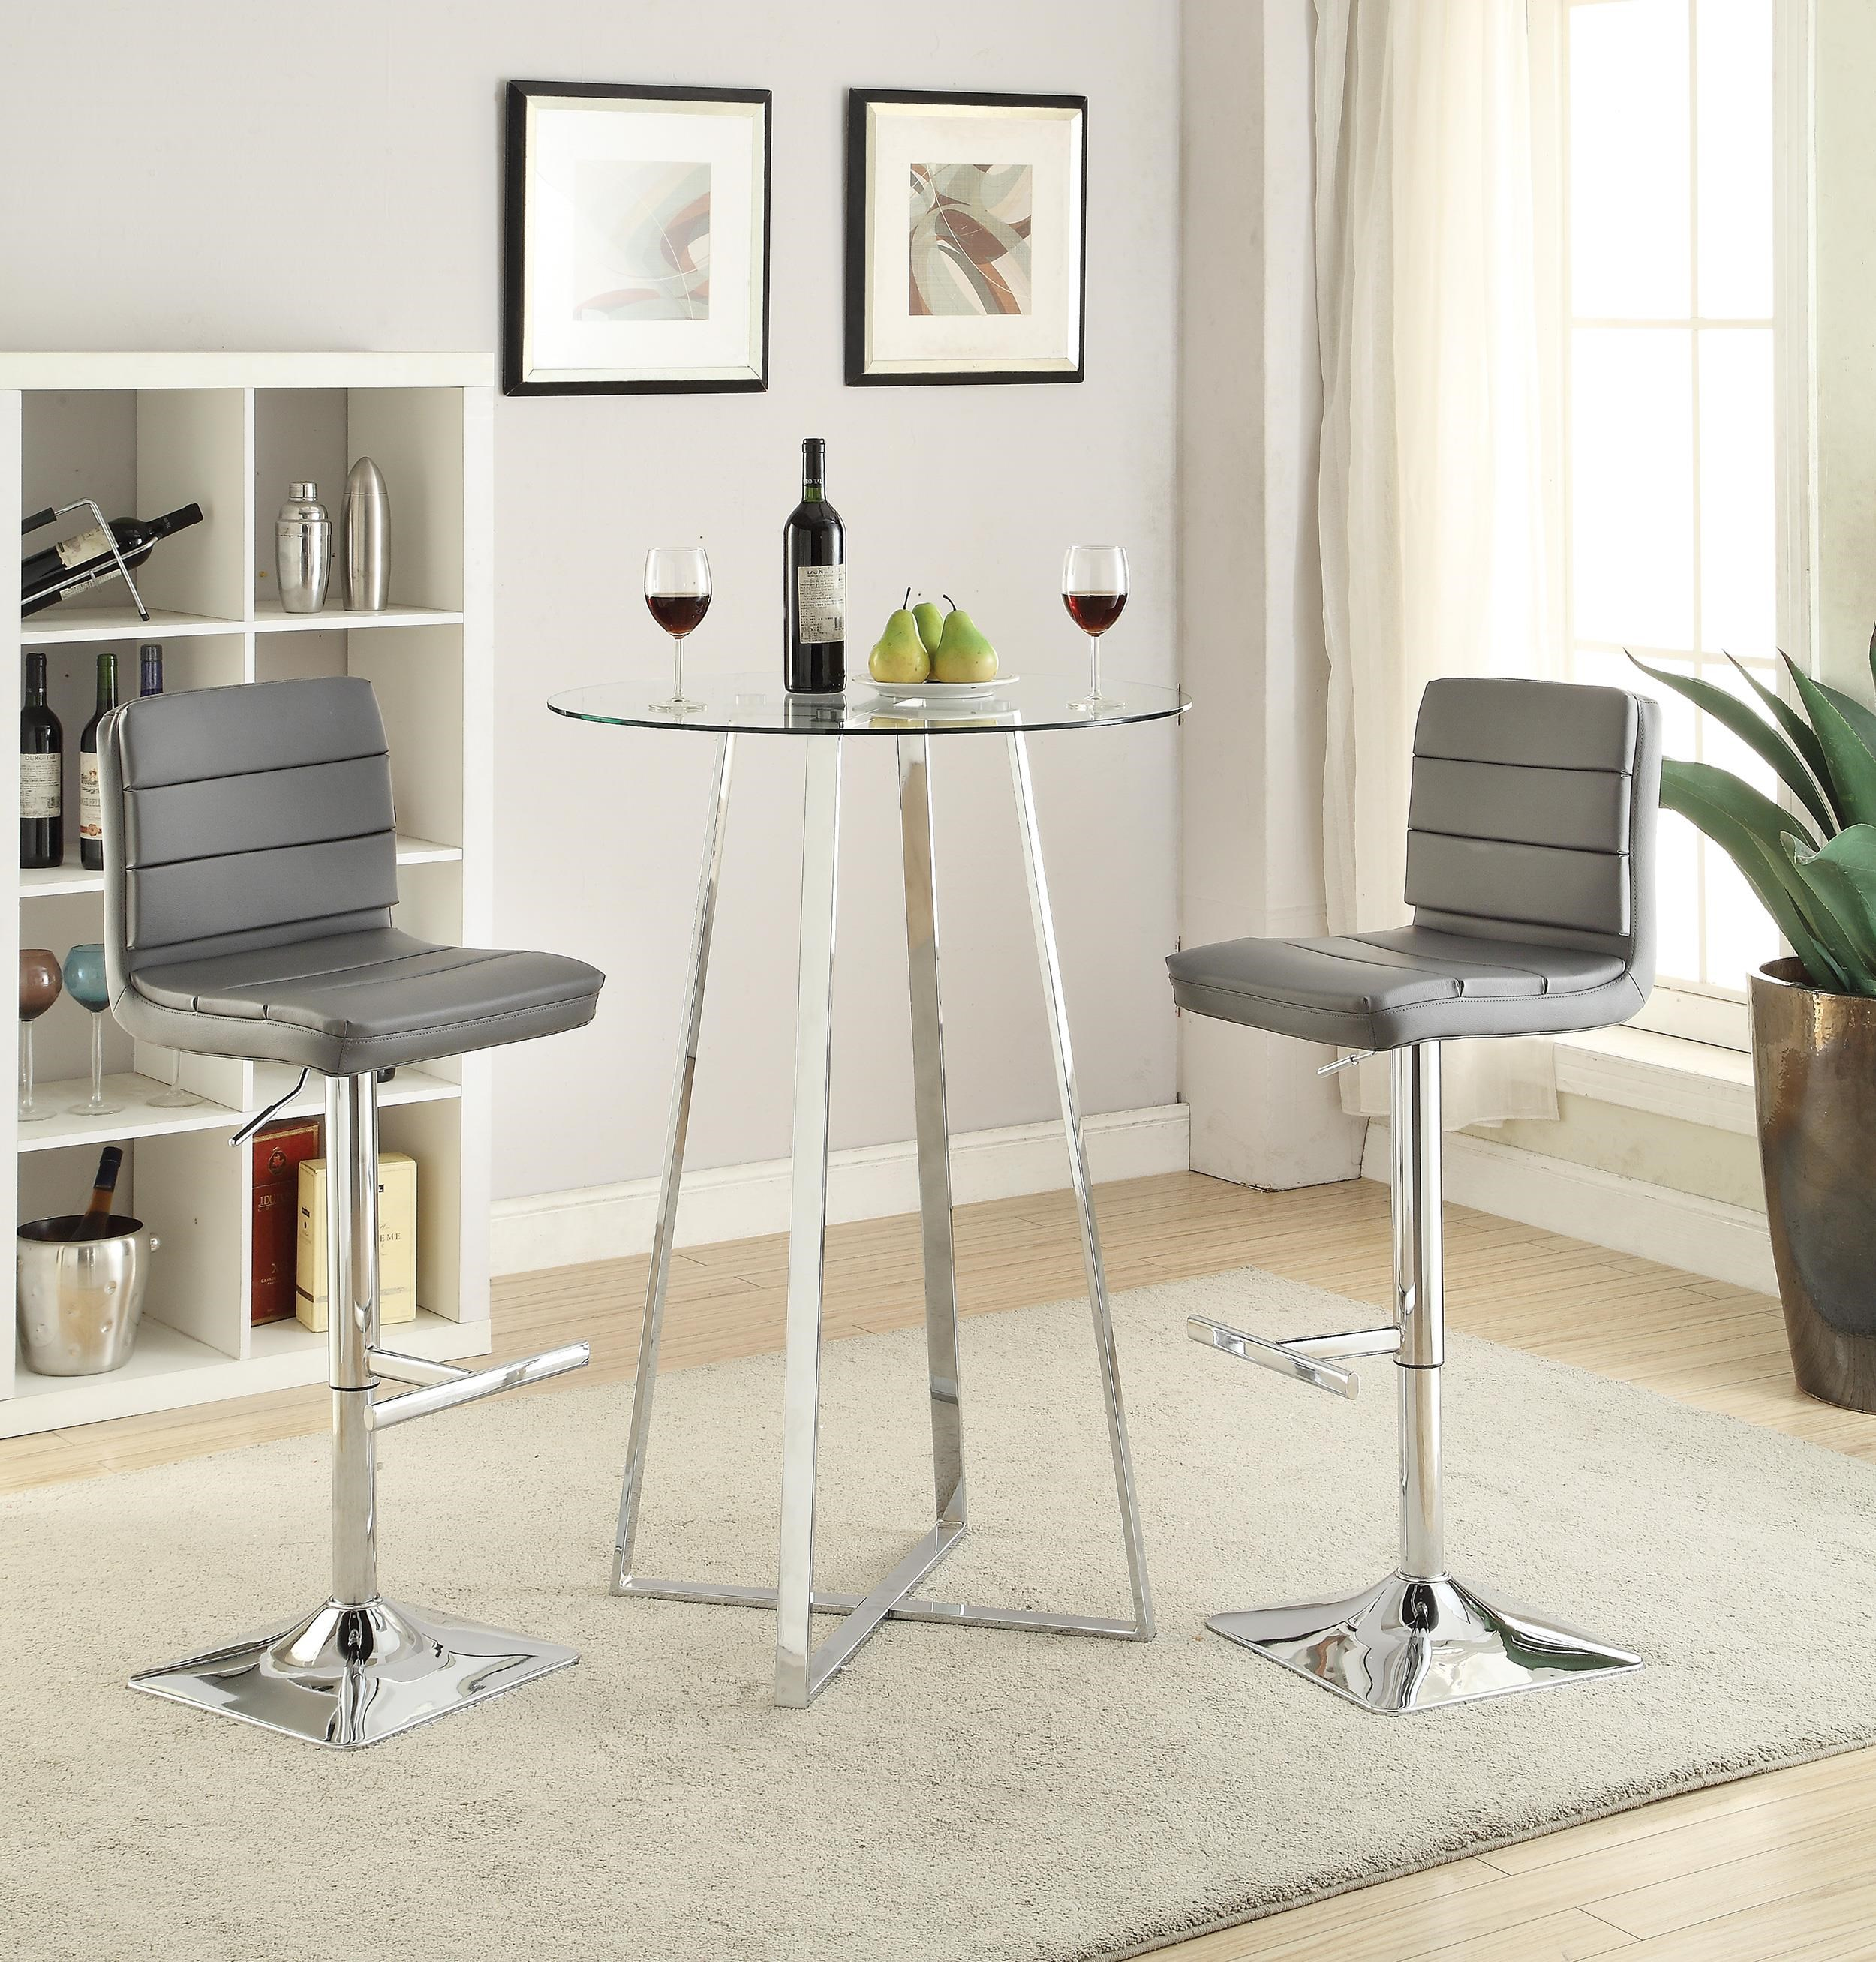 Bar Height Table And Chairs Bar Units And Bar Tables Glass Bar Height Dining Set By Coaster At Dunk Bright Furniture